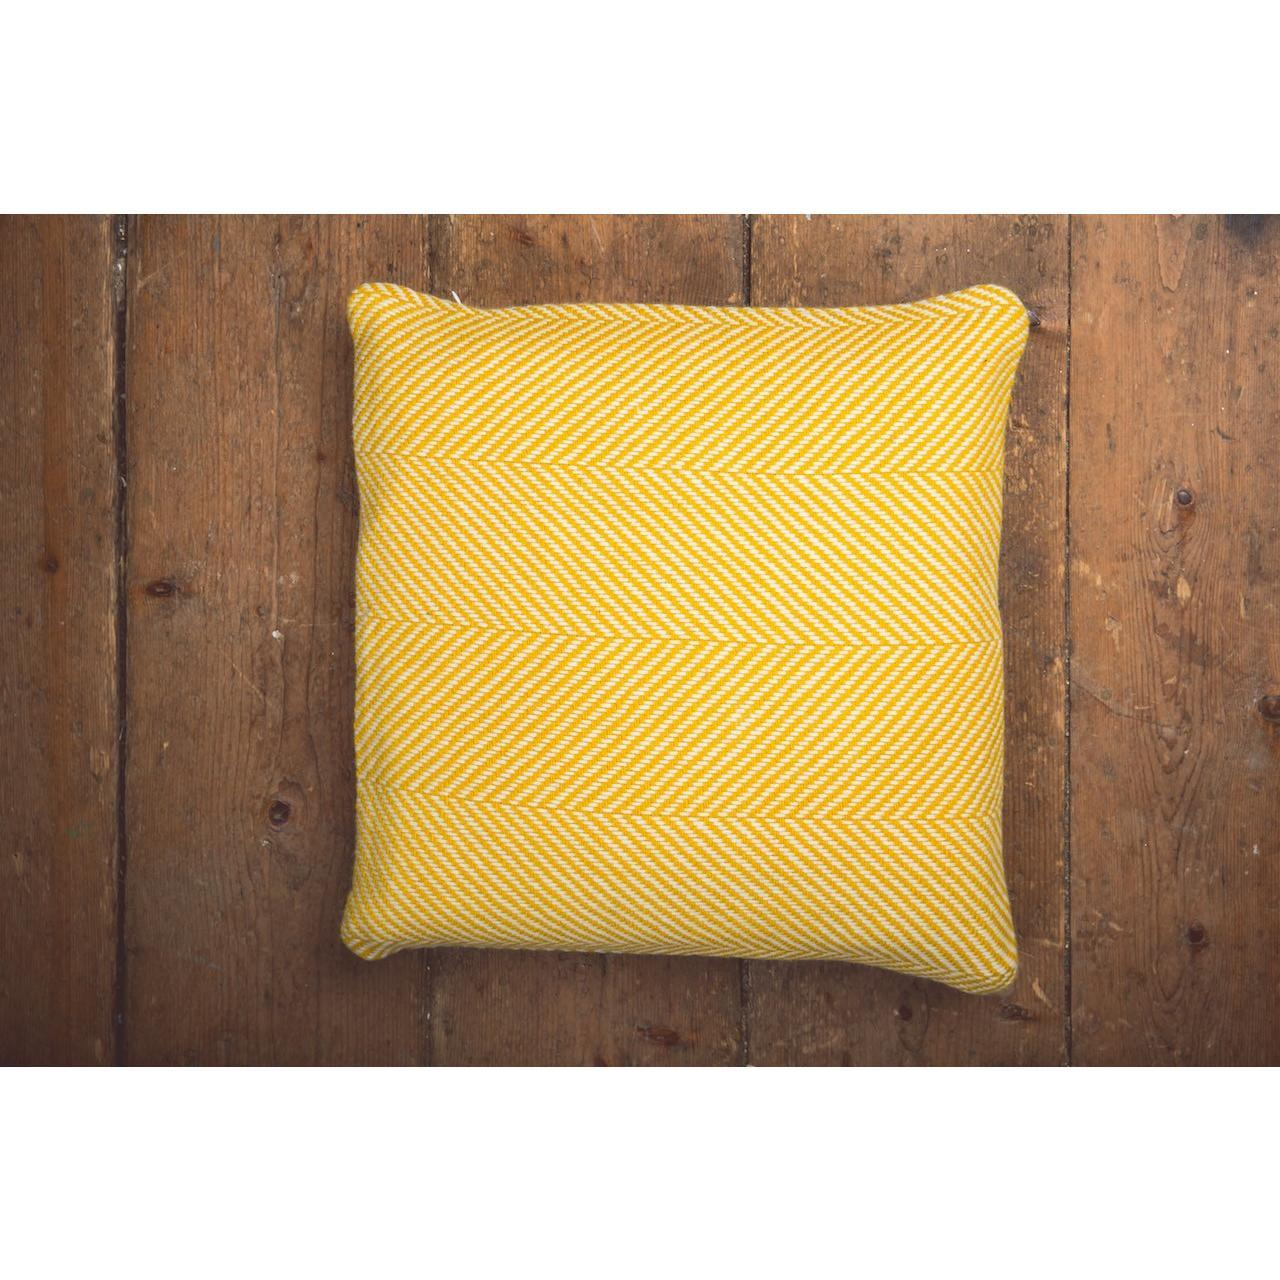 Foxford Lambswool Feather Filled Cushions Gold White Herringbone